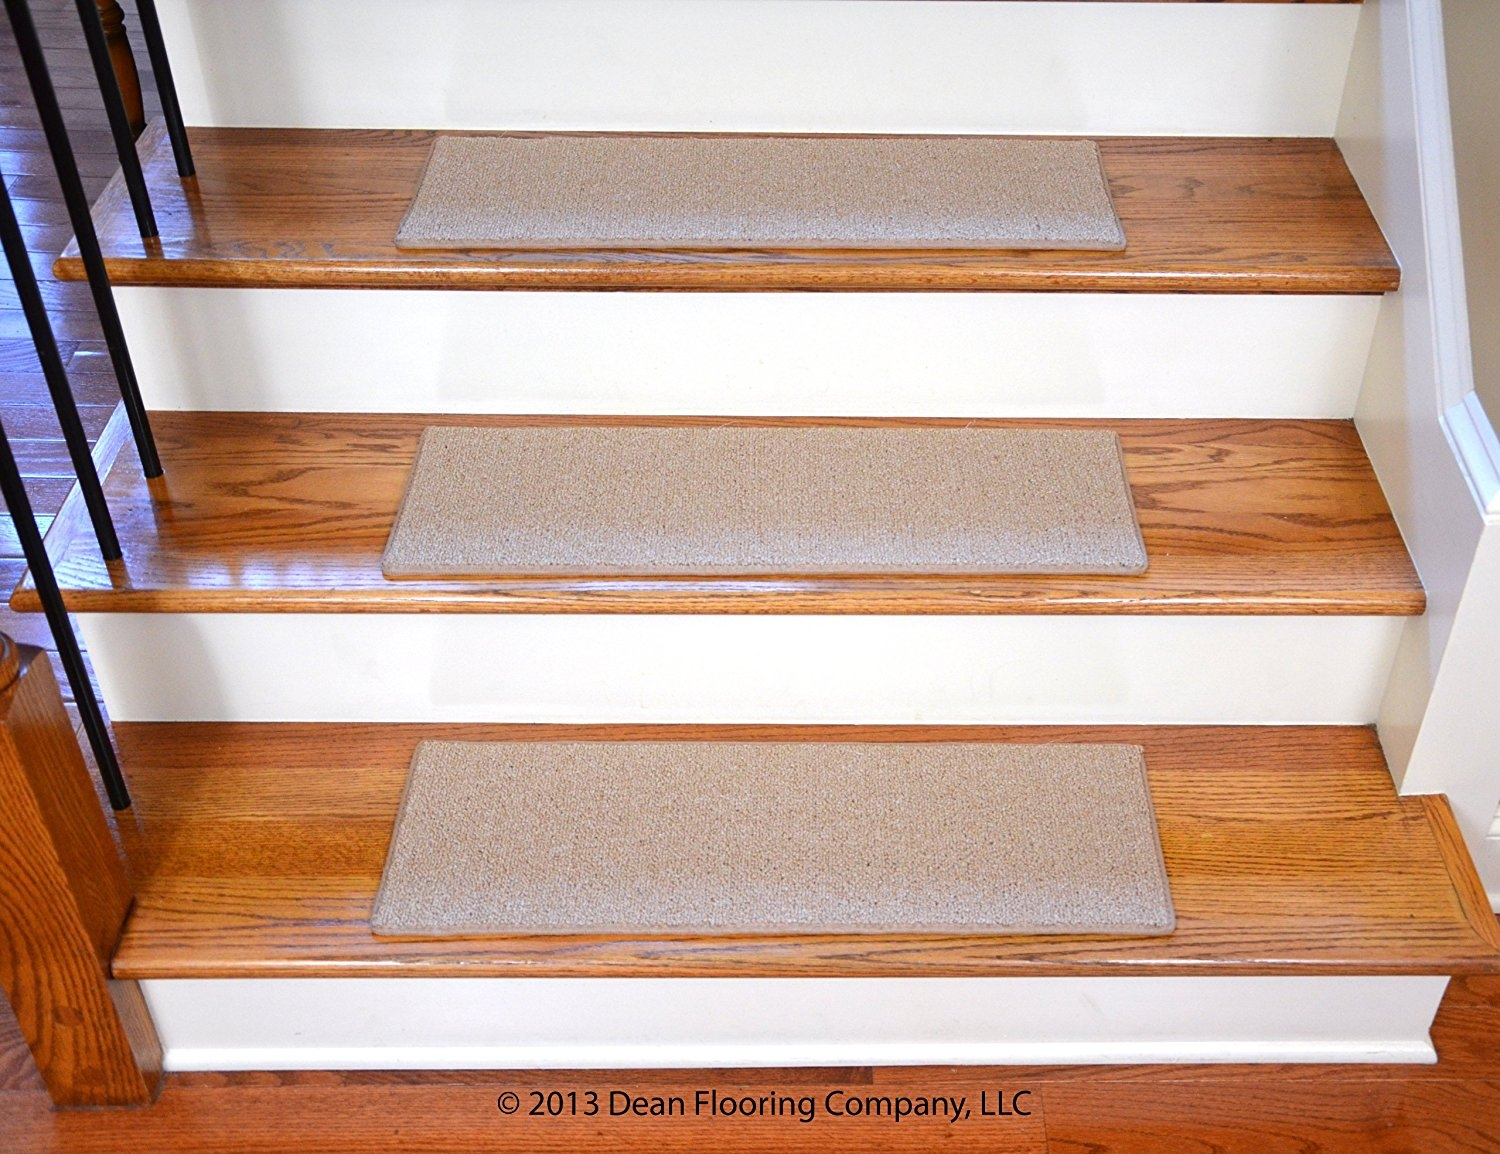 Dean Non Slip Tape Free Pet Friendly Diy Carpet Stair Treadsrugs Regarding Carpet Stair Treads Non Slip (View 9 of 20)